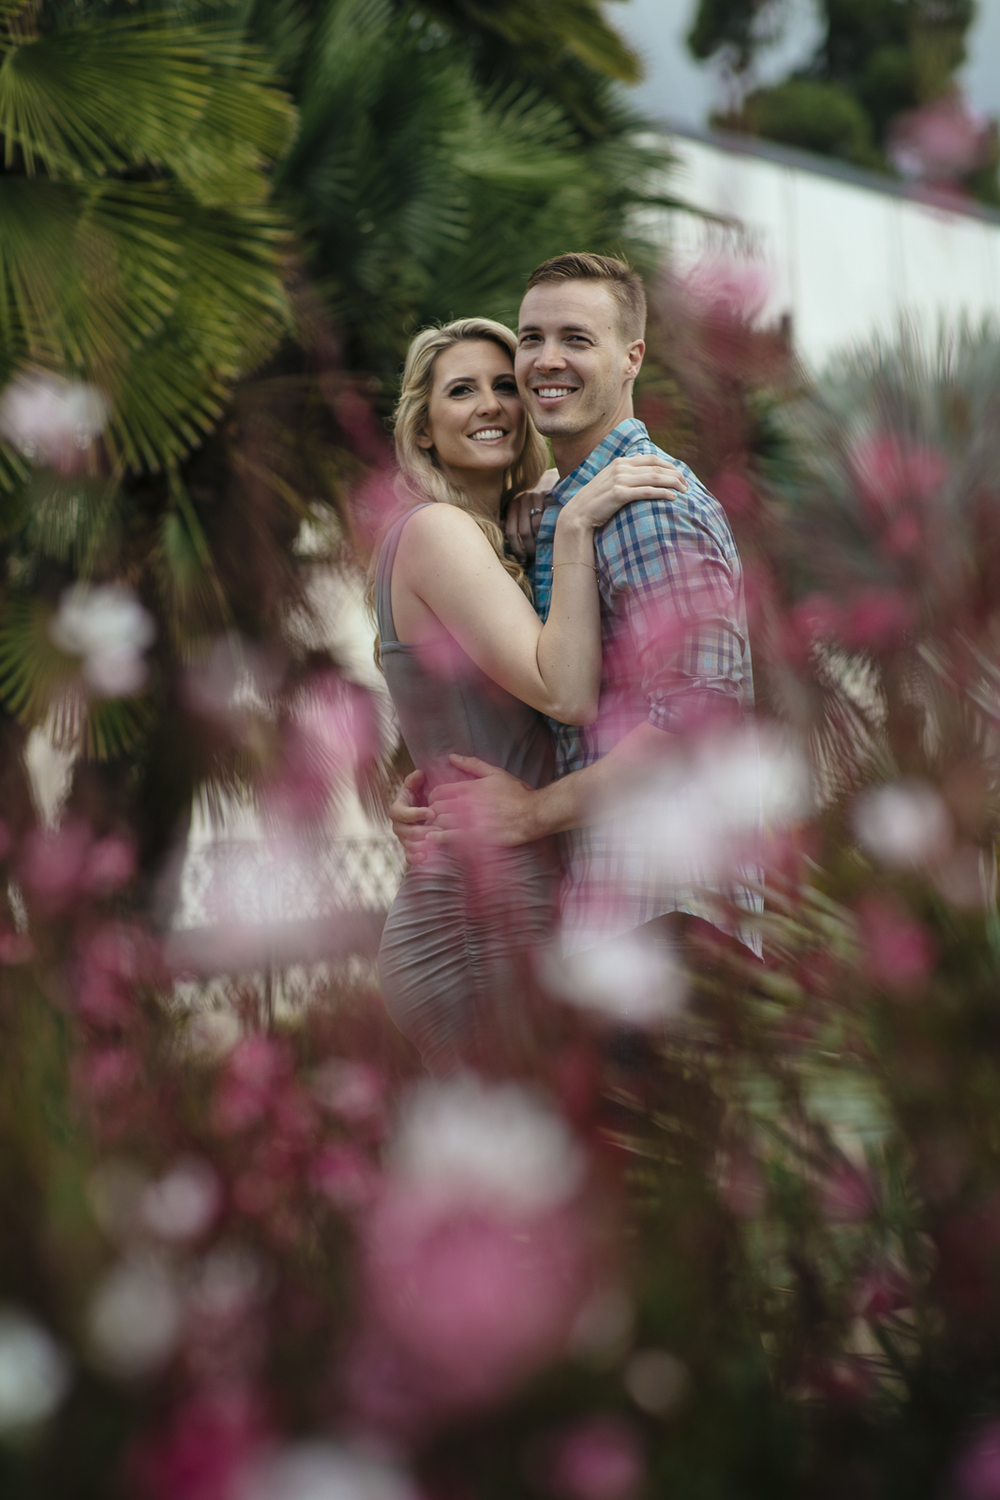 NANCY_&_AARON_ENGAGEMENT_BALBOA_PARKS_LEAF_PHOTOGRAPHY_2016_5465.JPG